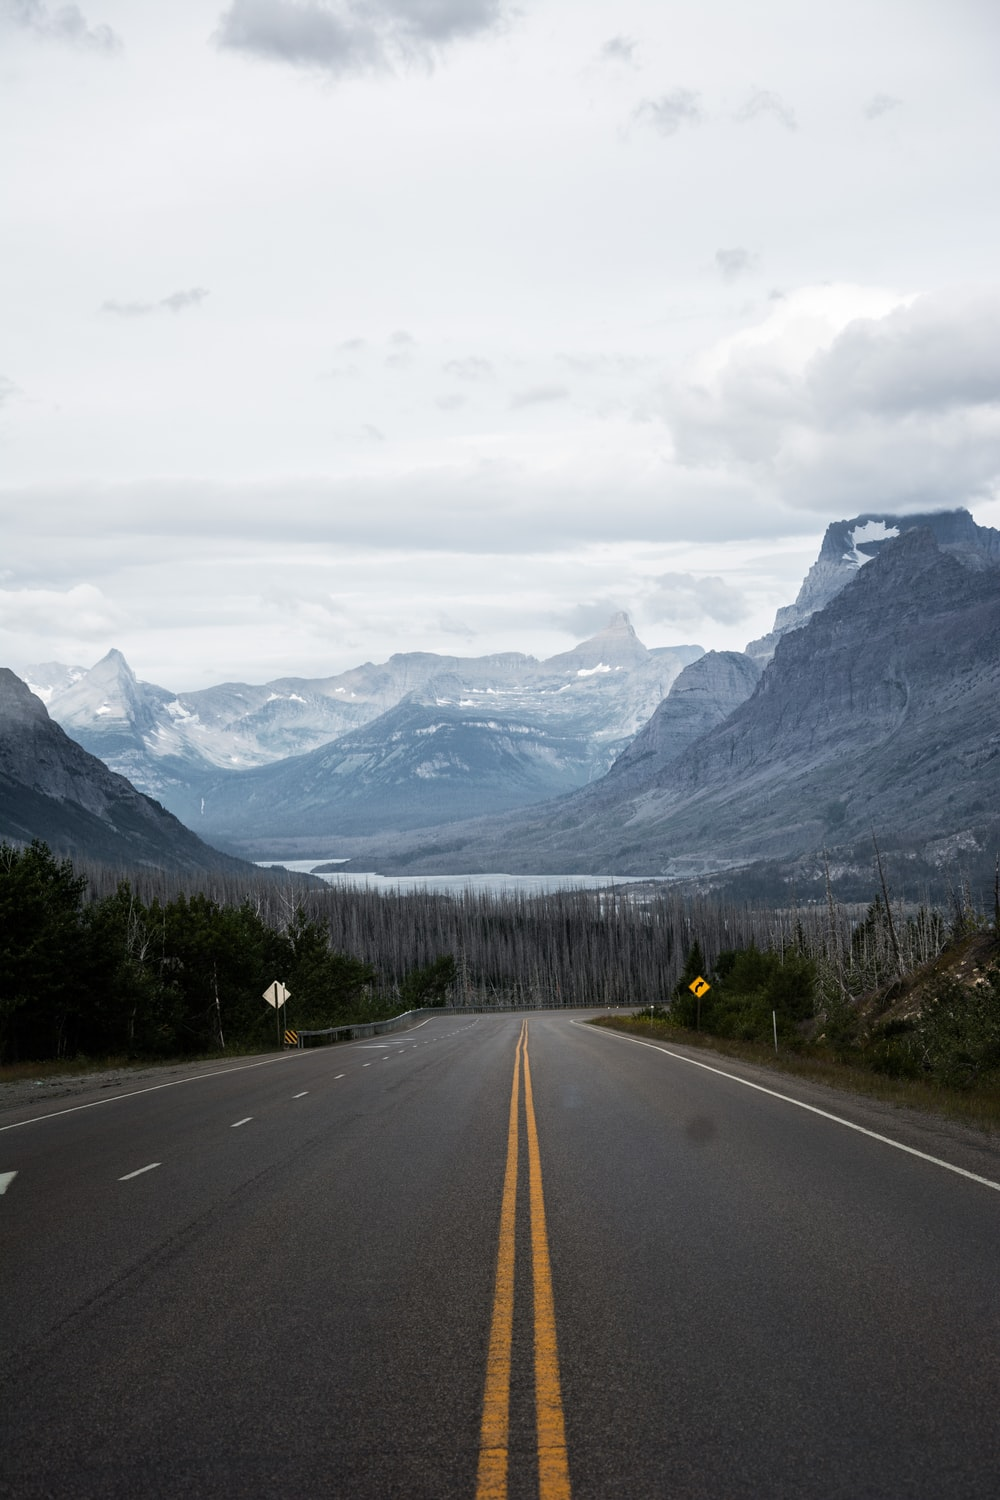 empty road front of mountains at daytime